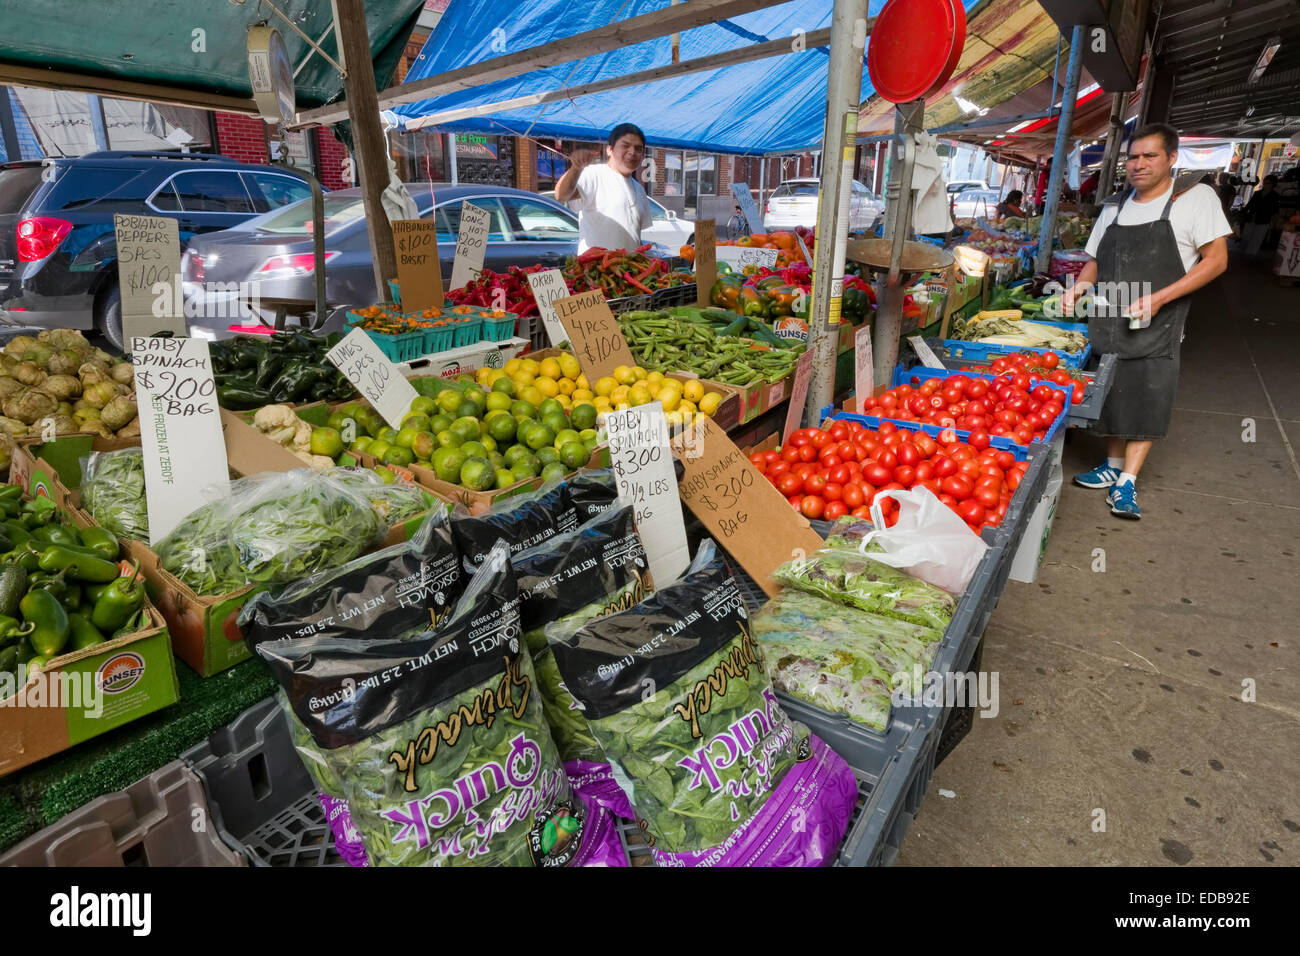 The South 9th Street Italian Market, Philadelphia, Pennsylvania - Stock Image